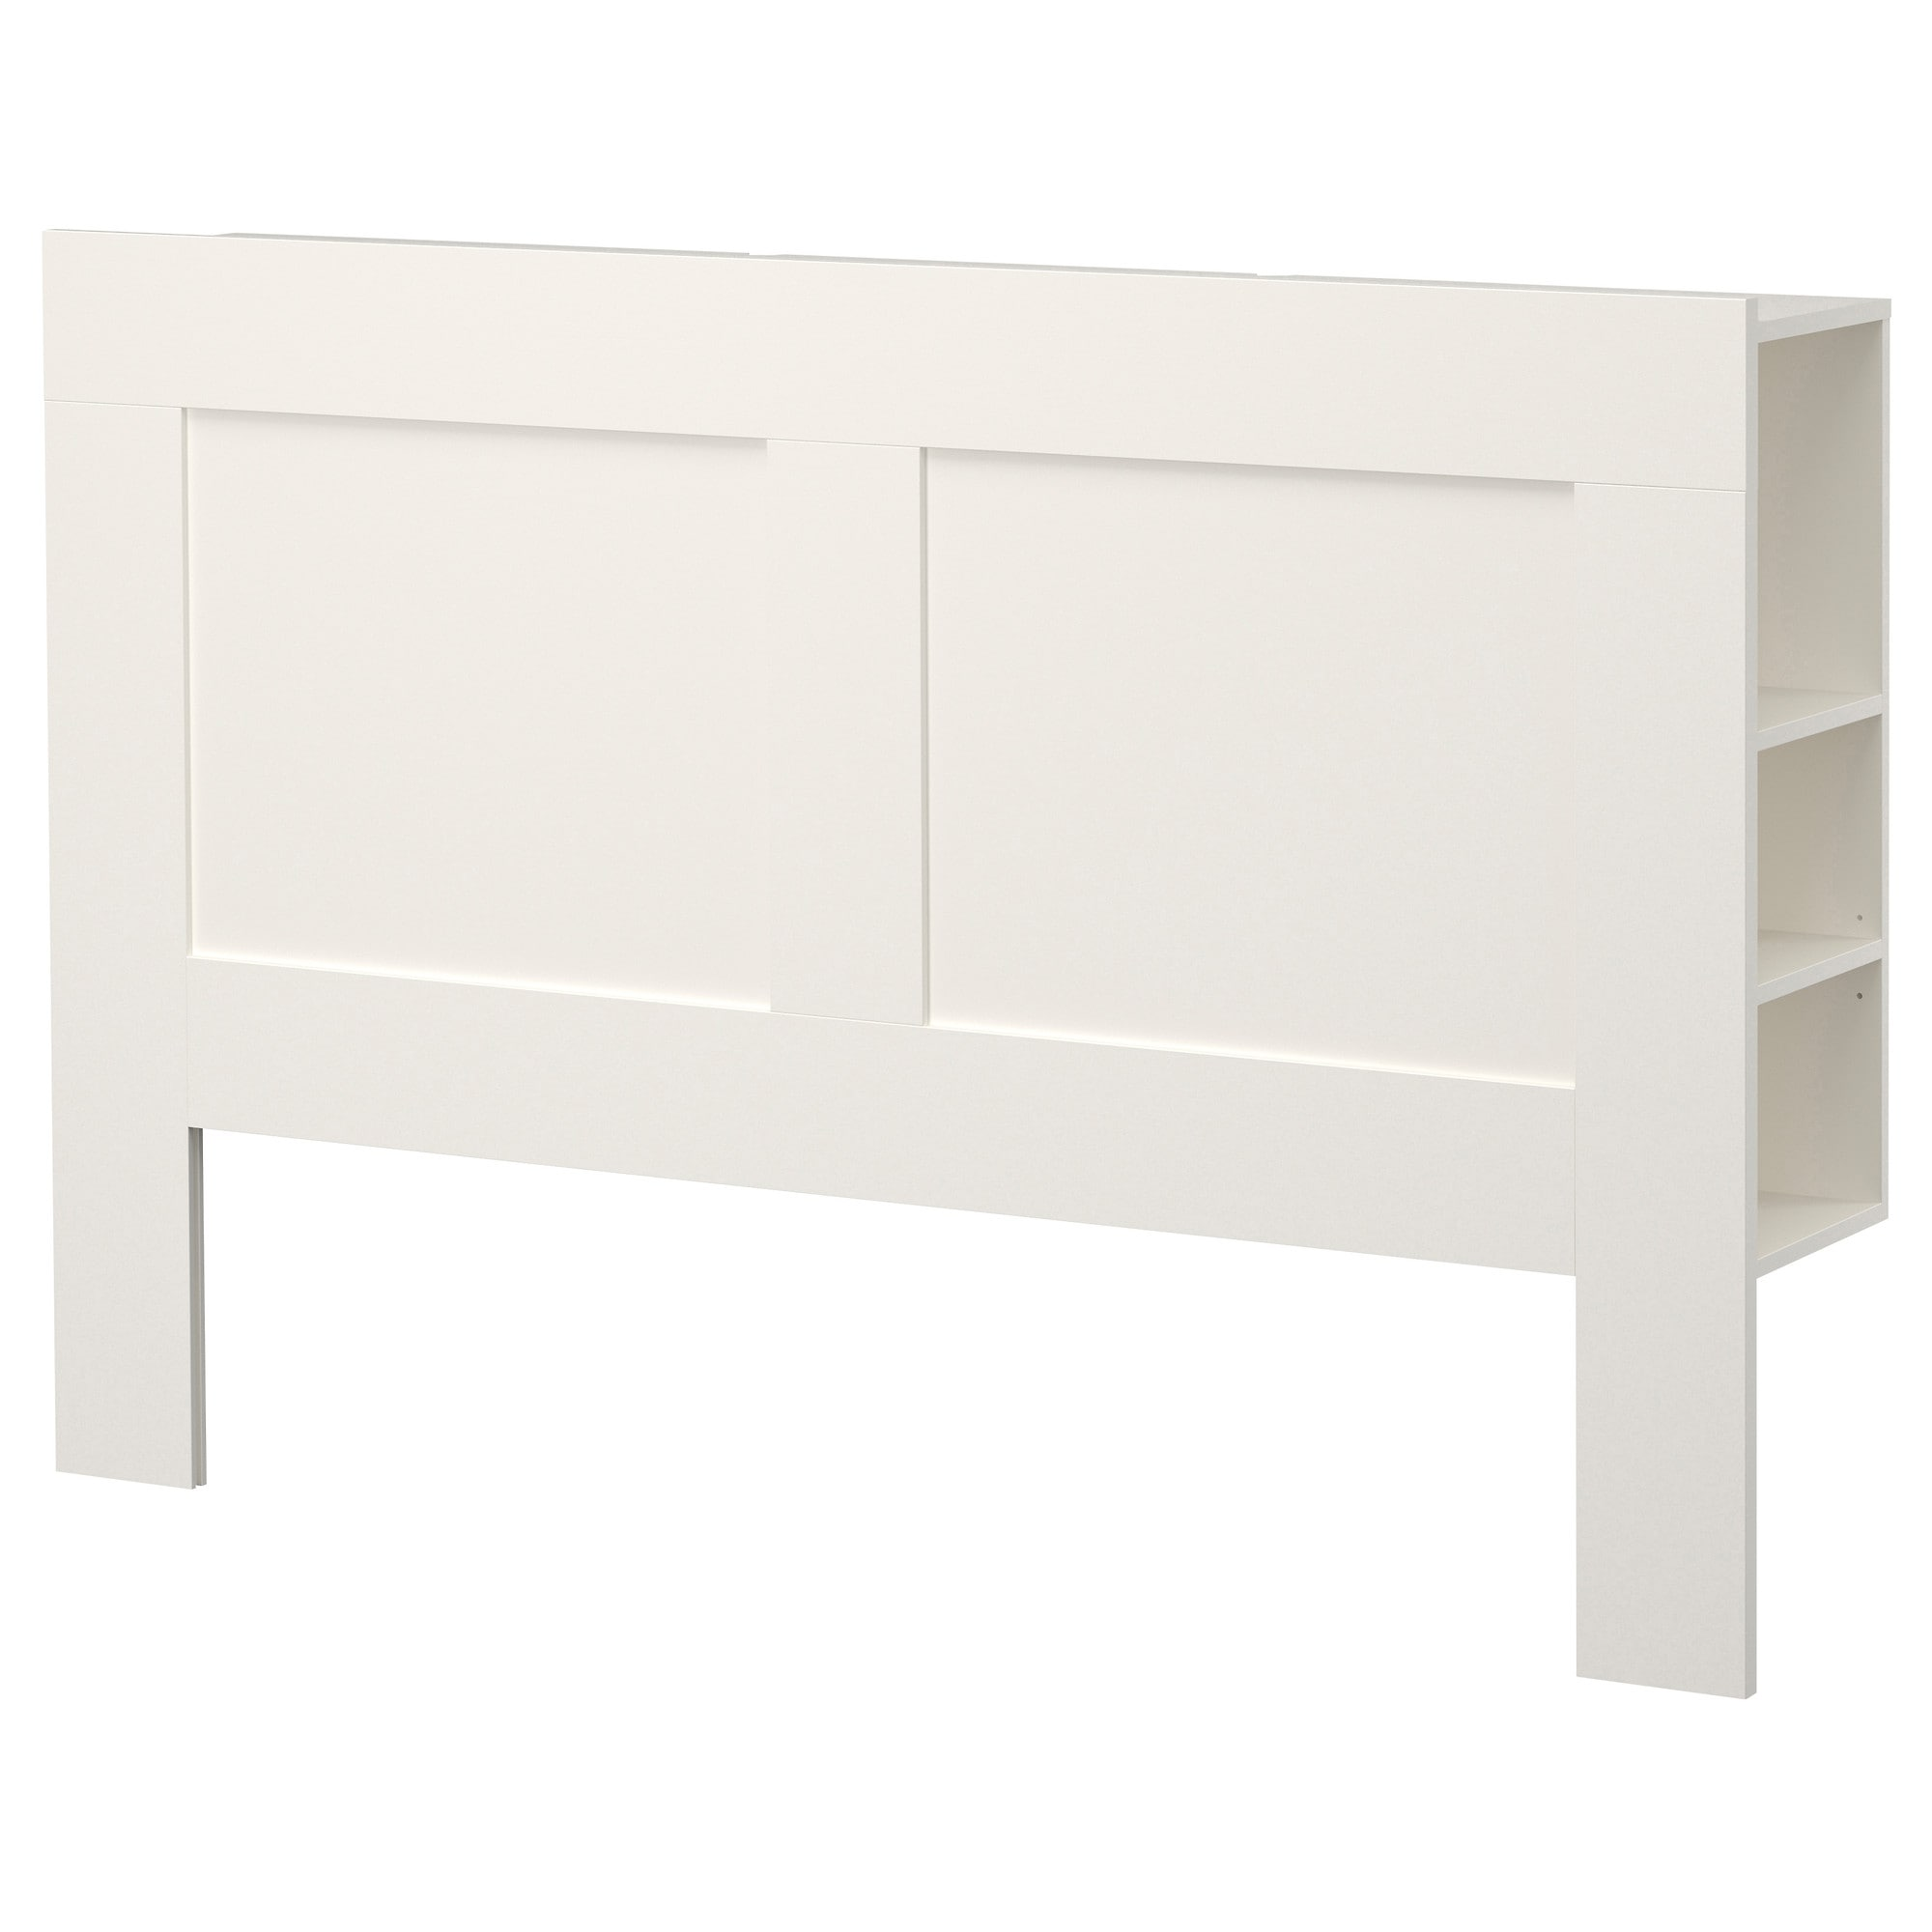 Ikea headboard storage interior decorating accessories - Tete de lit blanc d ivoire ...